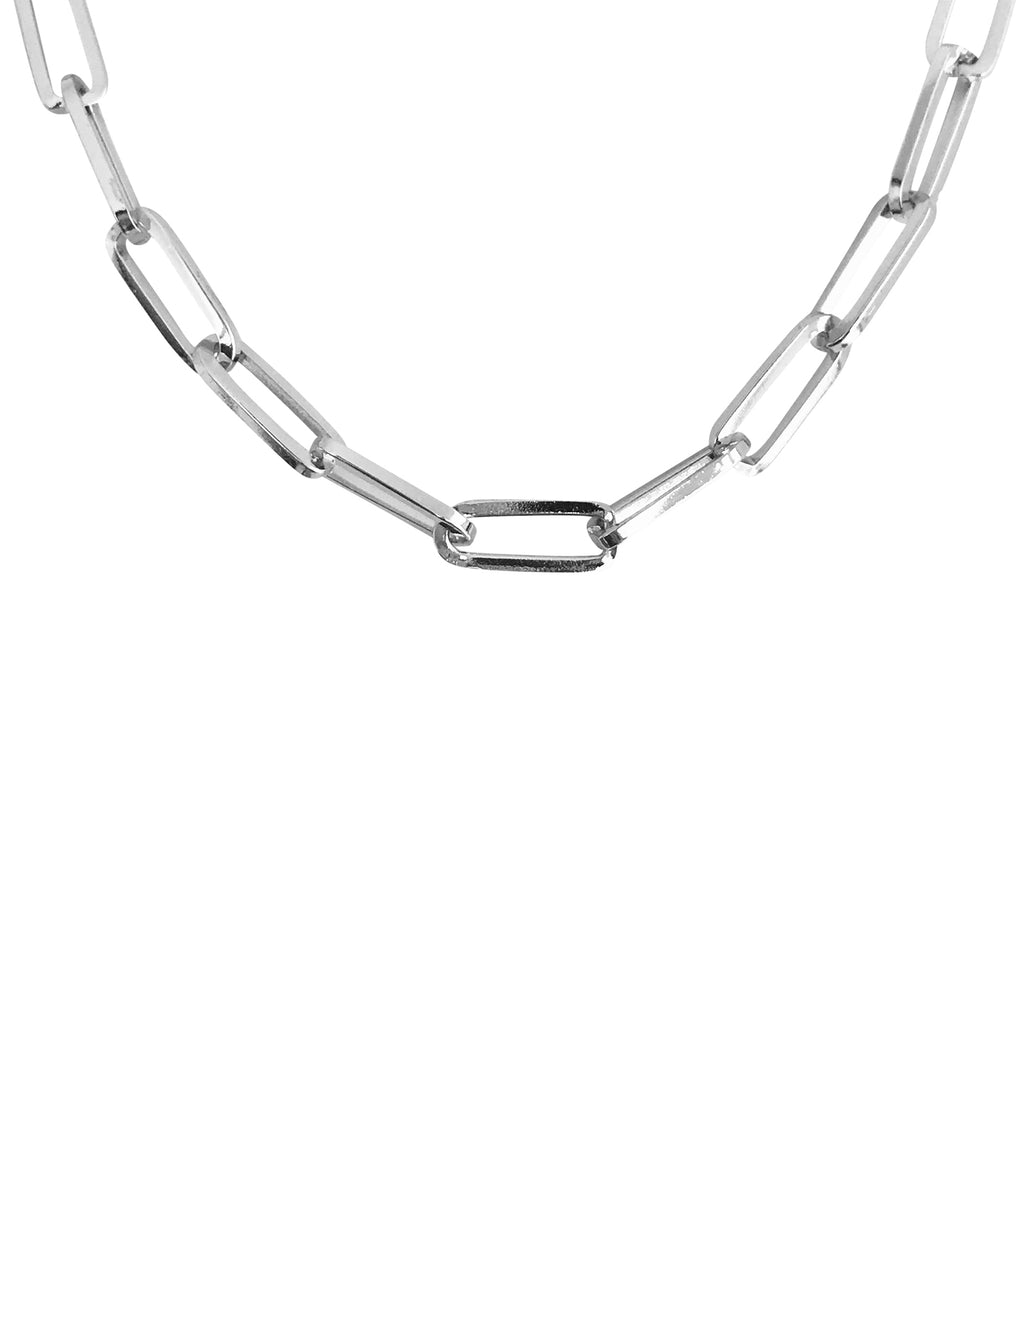 Ochse XL Chain in Silver